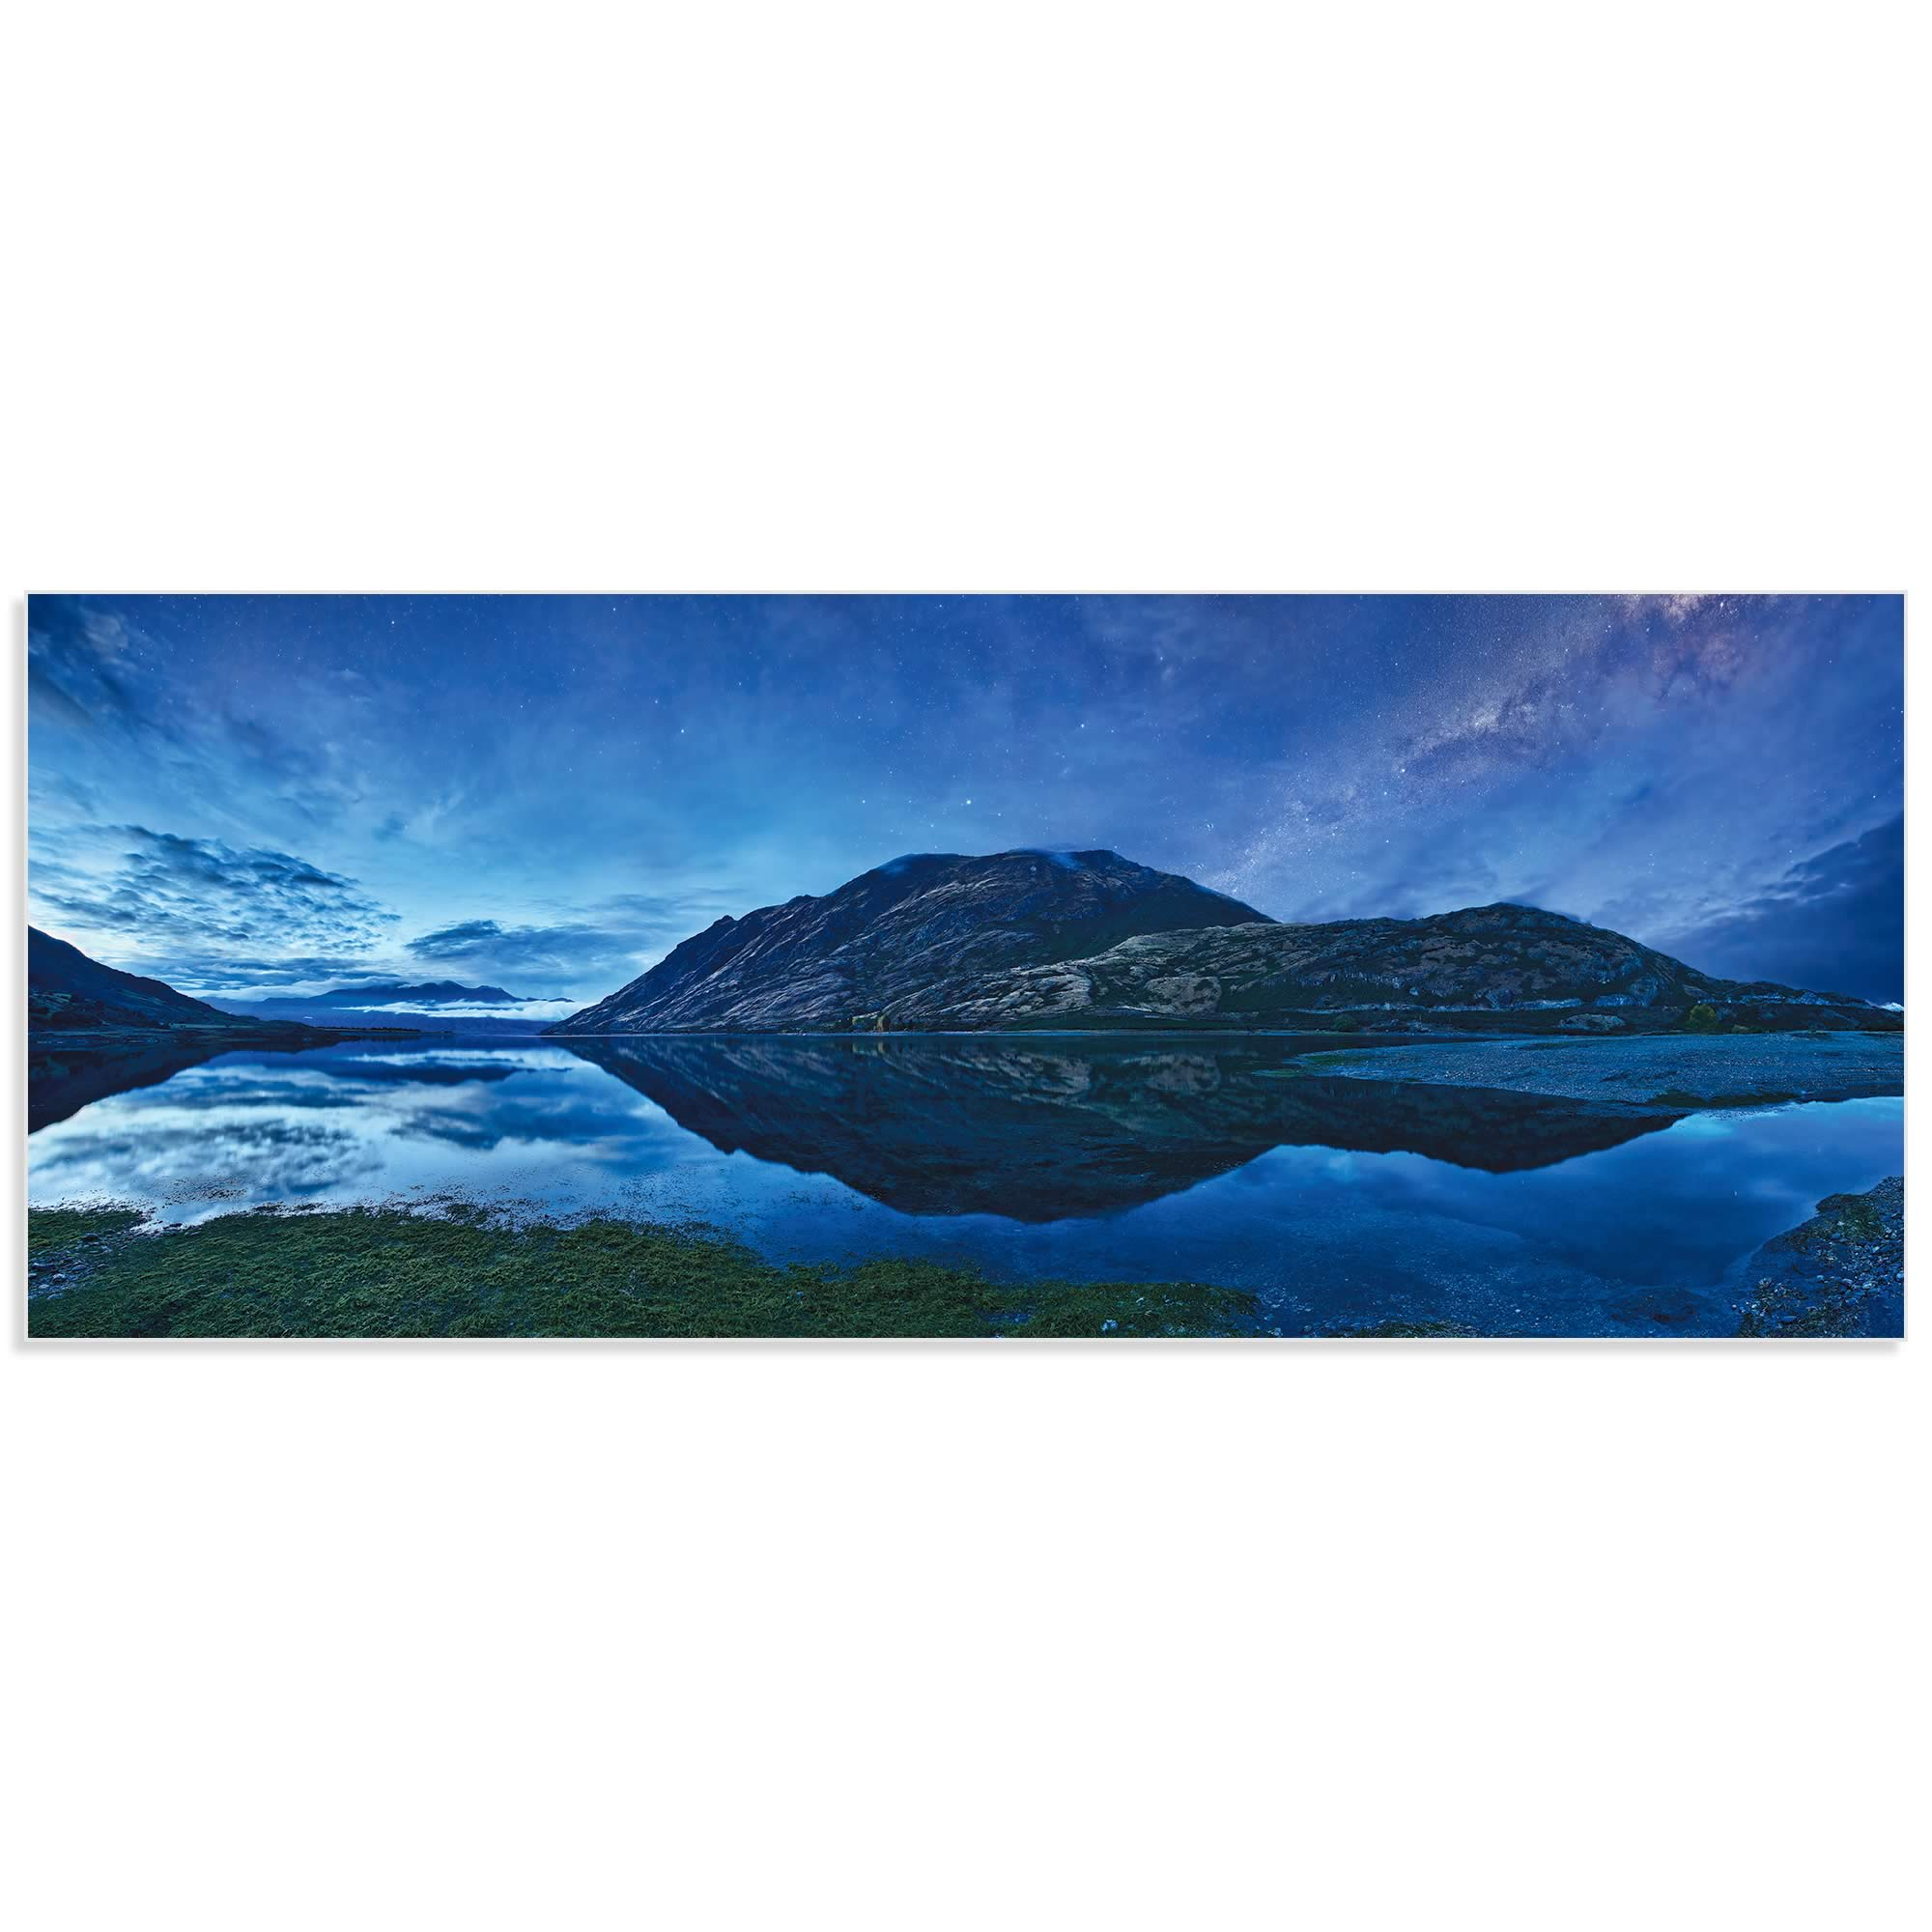 Lake Hawea by Yan Zhang - Landscape Art on Metal or Acrylic - Alternate View 2